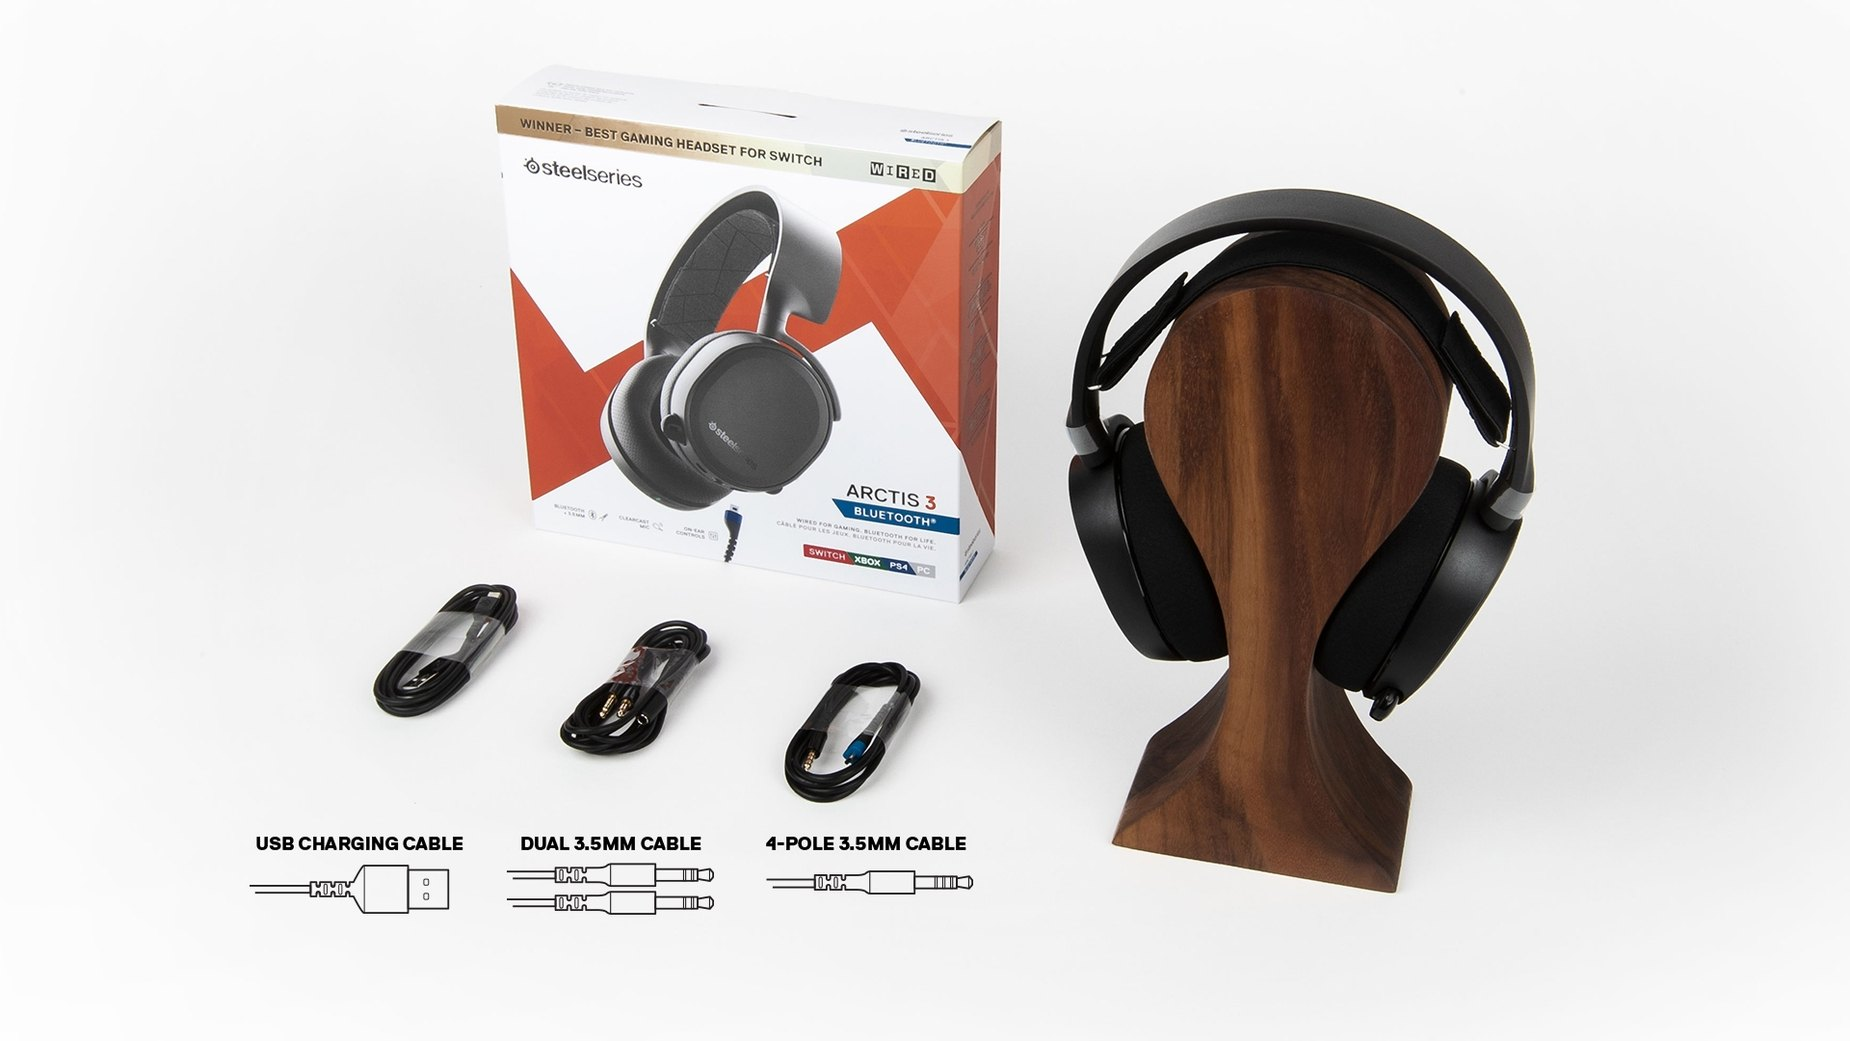 The Arctis 3 Bluetooth wireless gaming headset surrounded by retail package and box content including; USB charging cable, Dual 3.5mm cable, and 4-pole 3.5mm cable